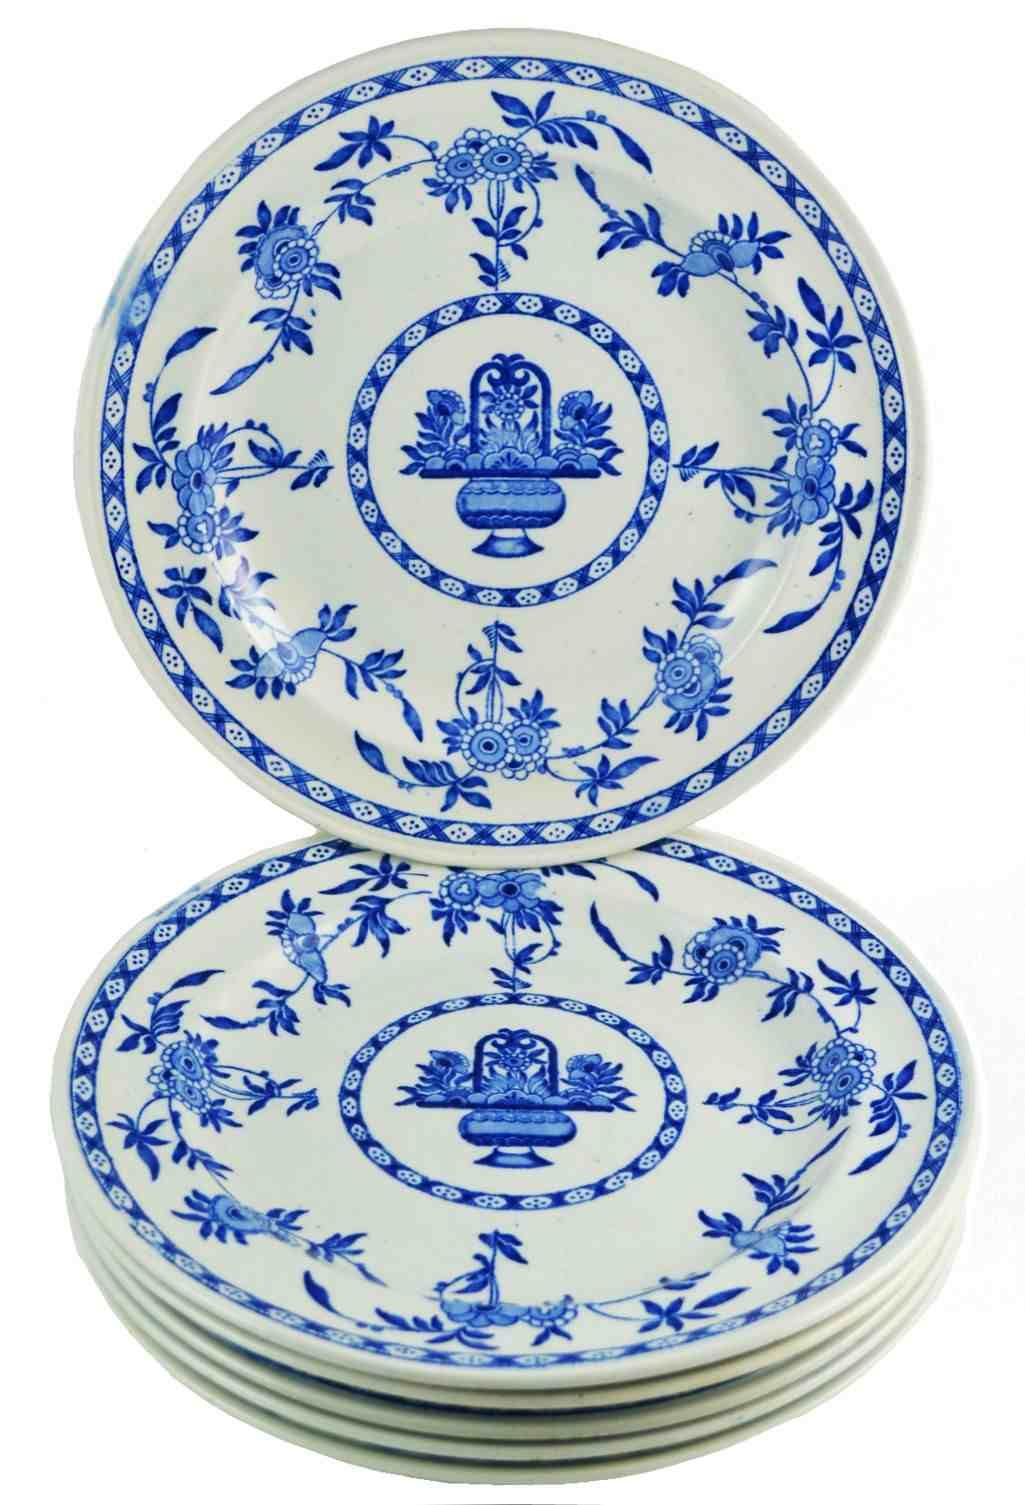 Six Blue \u0026 White English Delft Dinner Plates Early Century  sc 1 st  Pinterest & T.G. Green collection of \u0027Delft\u0027 Dinner Plates | Delft (D1081 ...